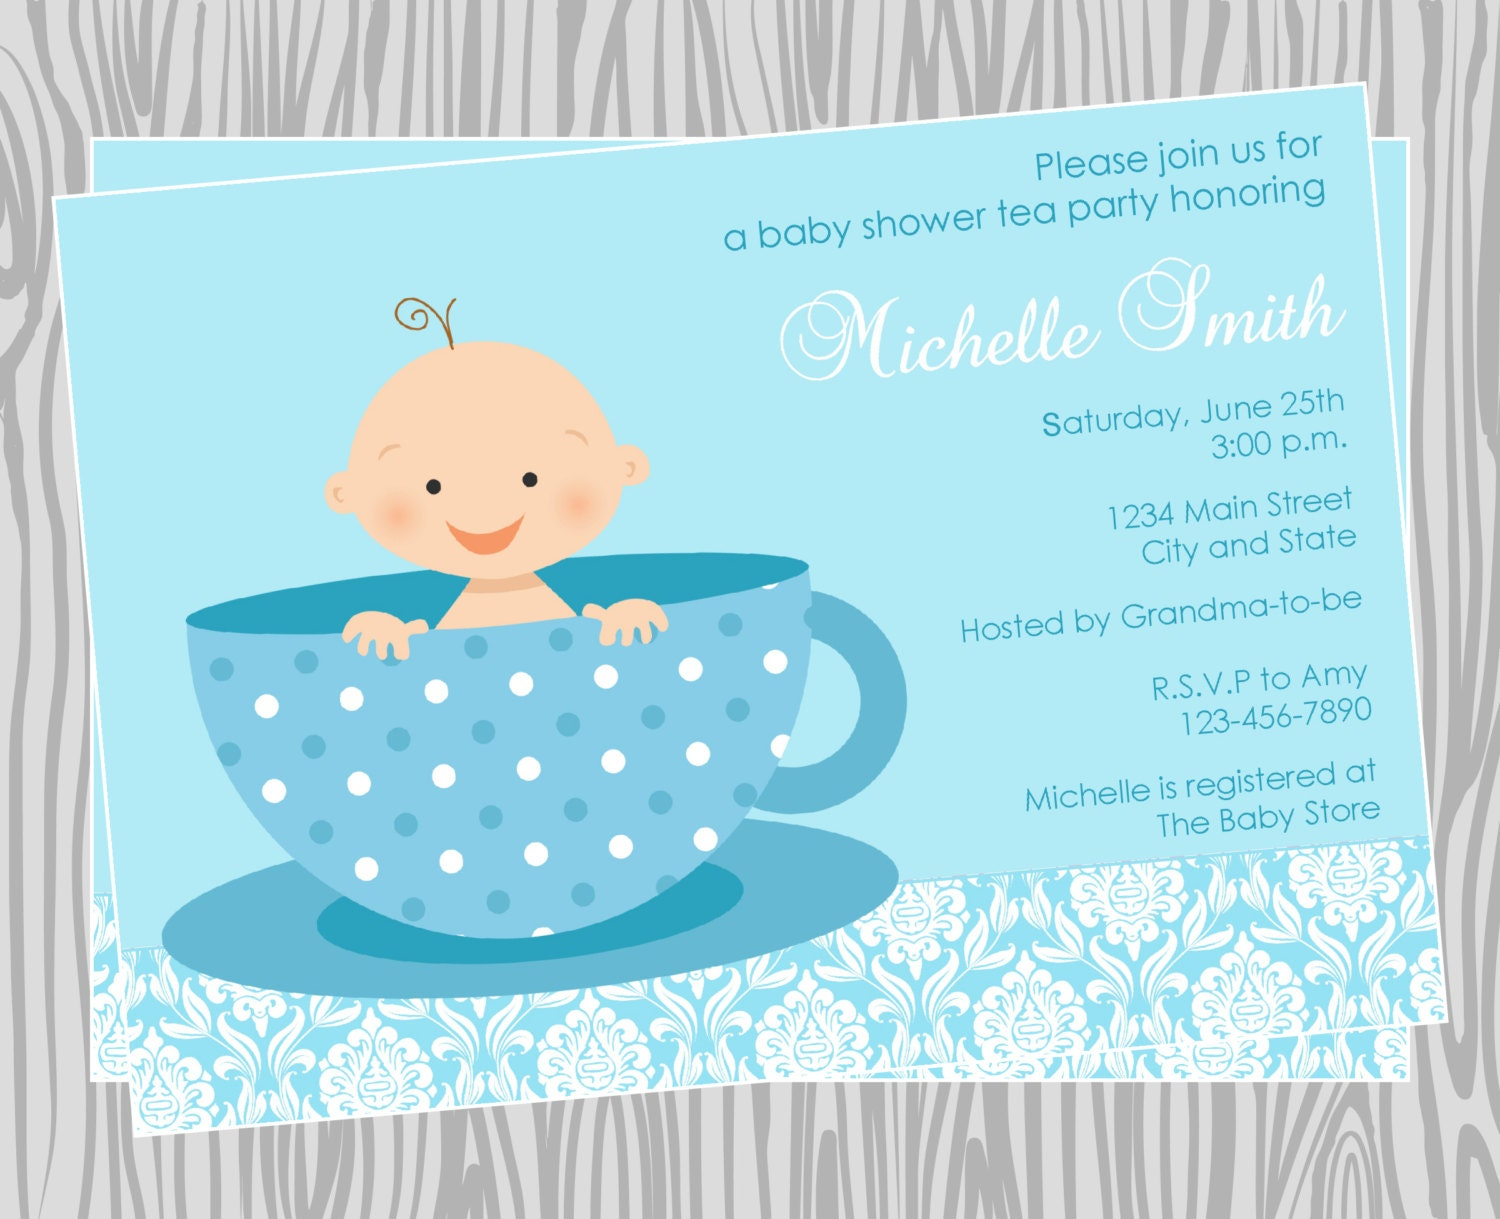 Design My Own Invitations Online For Free as awesome invitations ideas